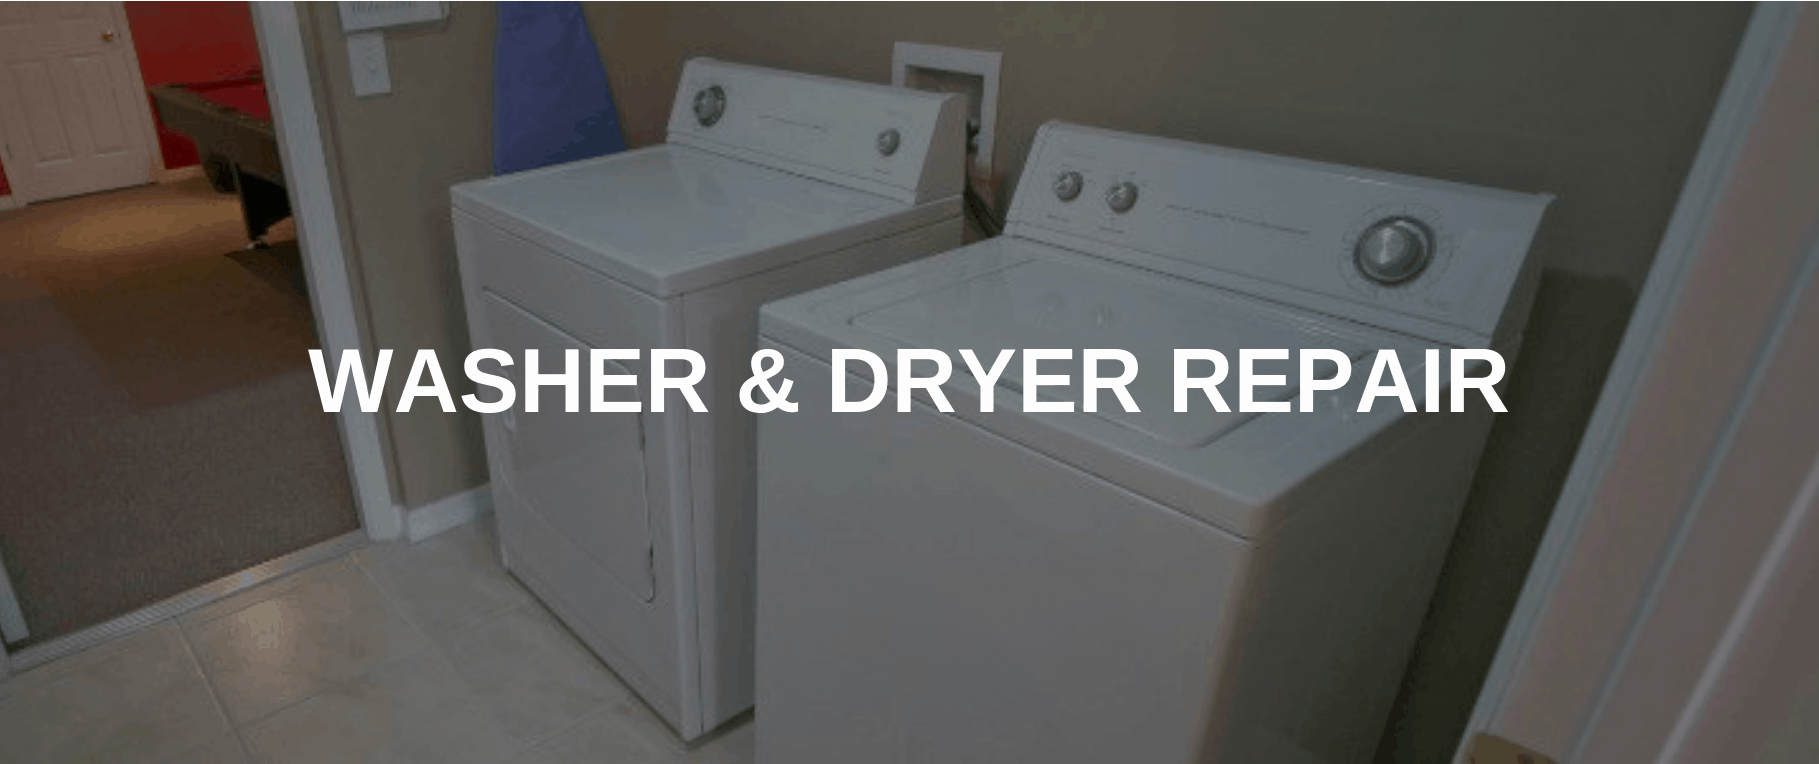 washing machine repair anaheim ca